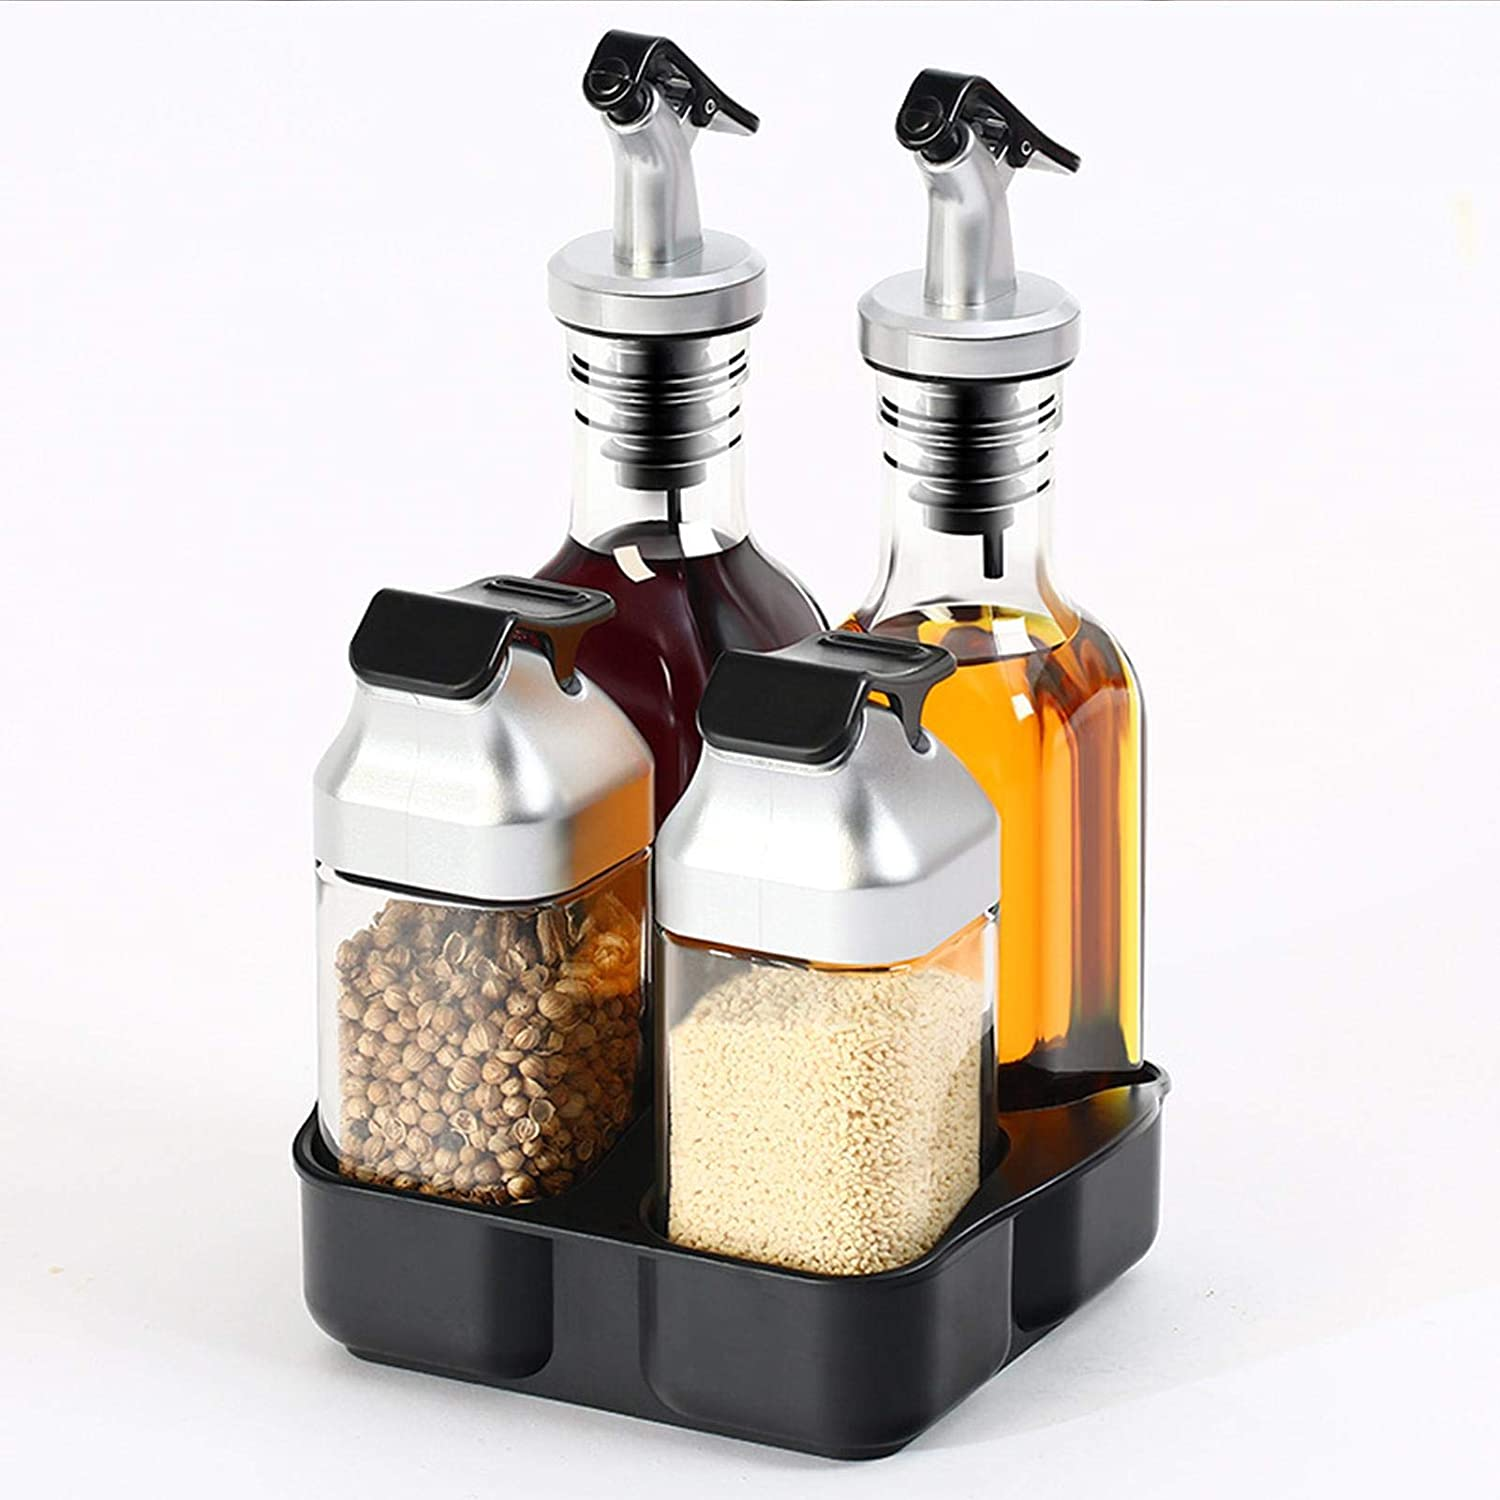 lolly-U Seasoning Dispenser Sets With 4 Vinegar Oil Popular product Jars security And PCS